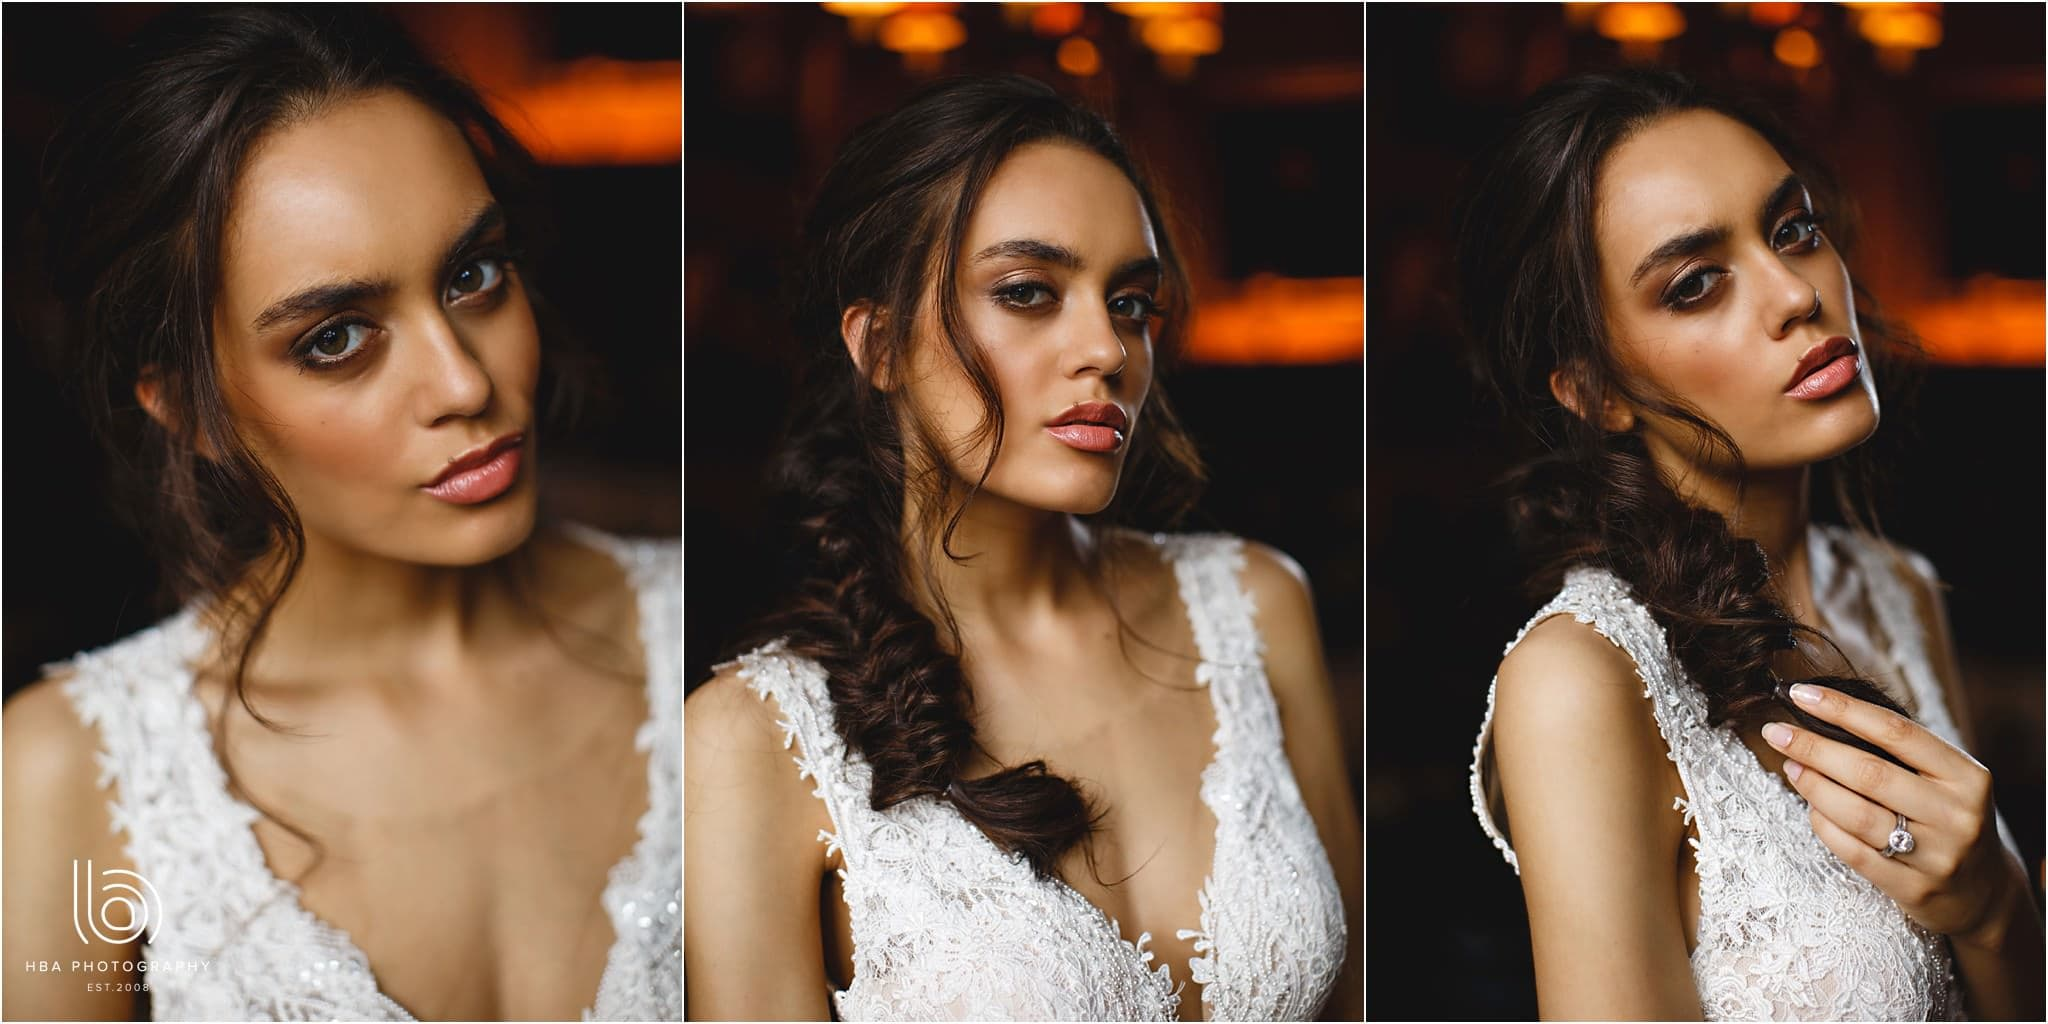 The bride look gorgeous with her hair and makeup